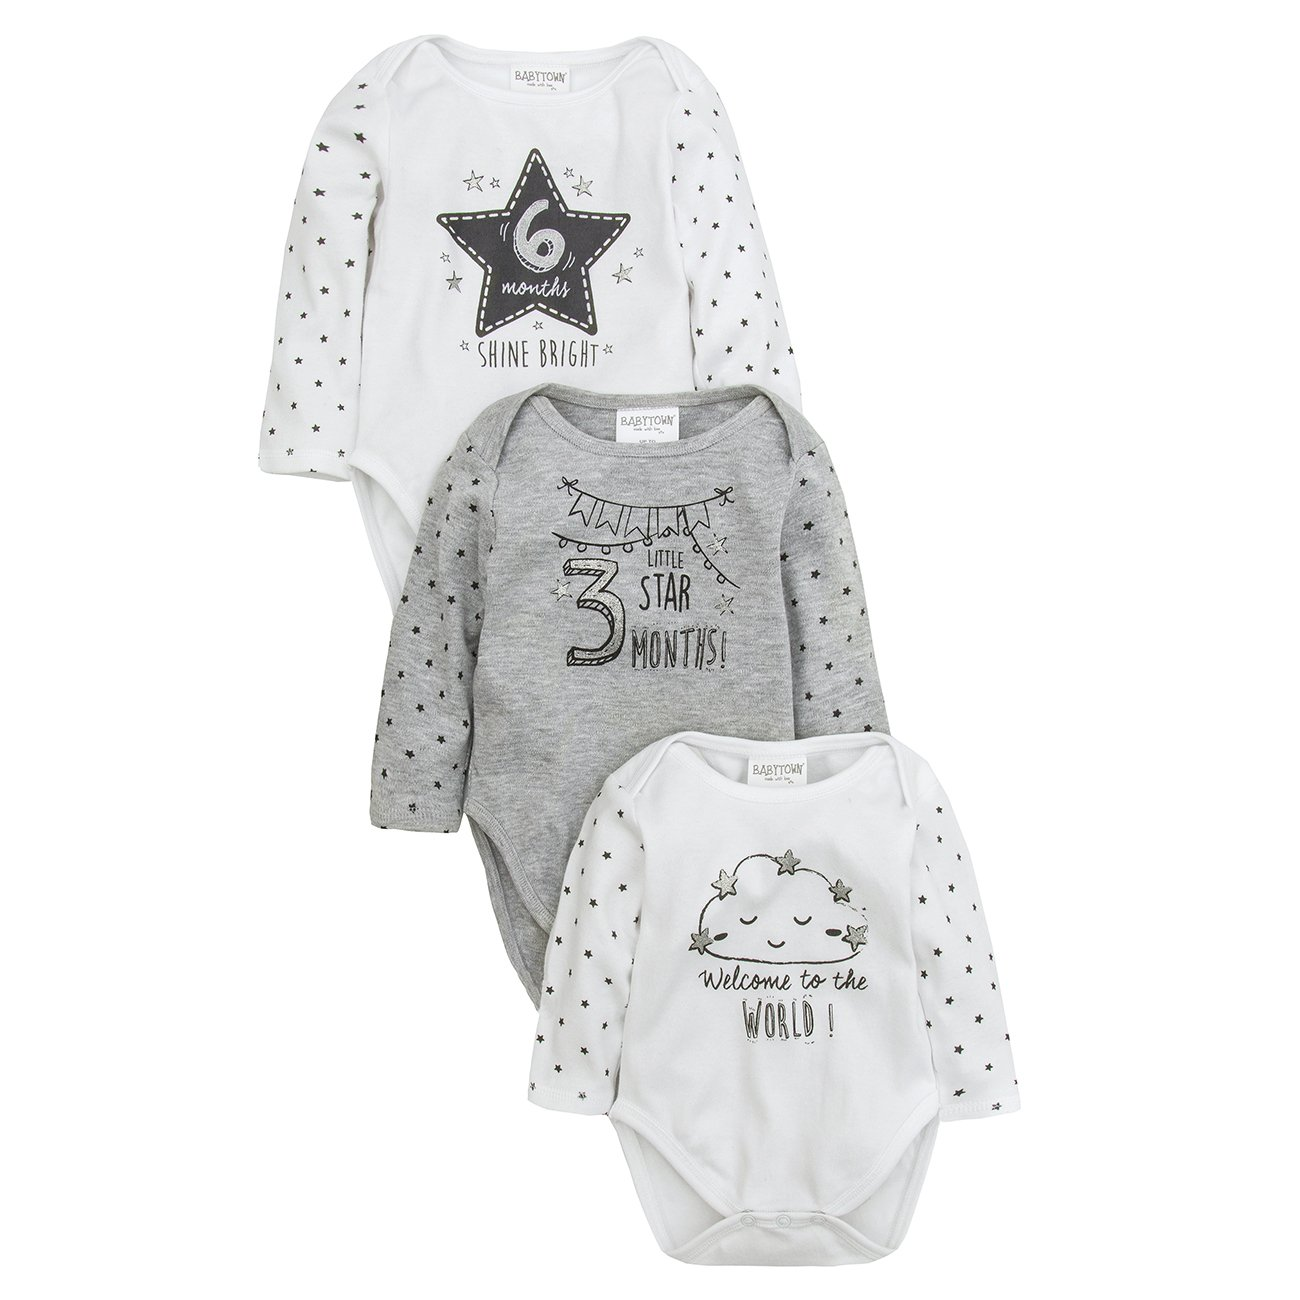 Baby Gift Pack of 3 Milestone Long Sleeve Bodysuit Vests Newborn to 6 Months